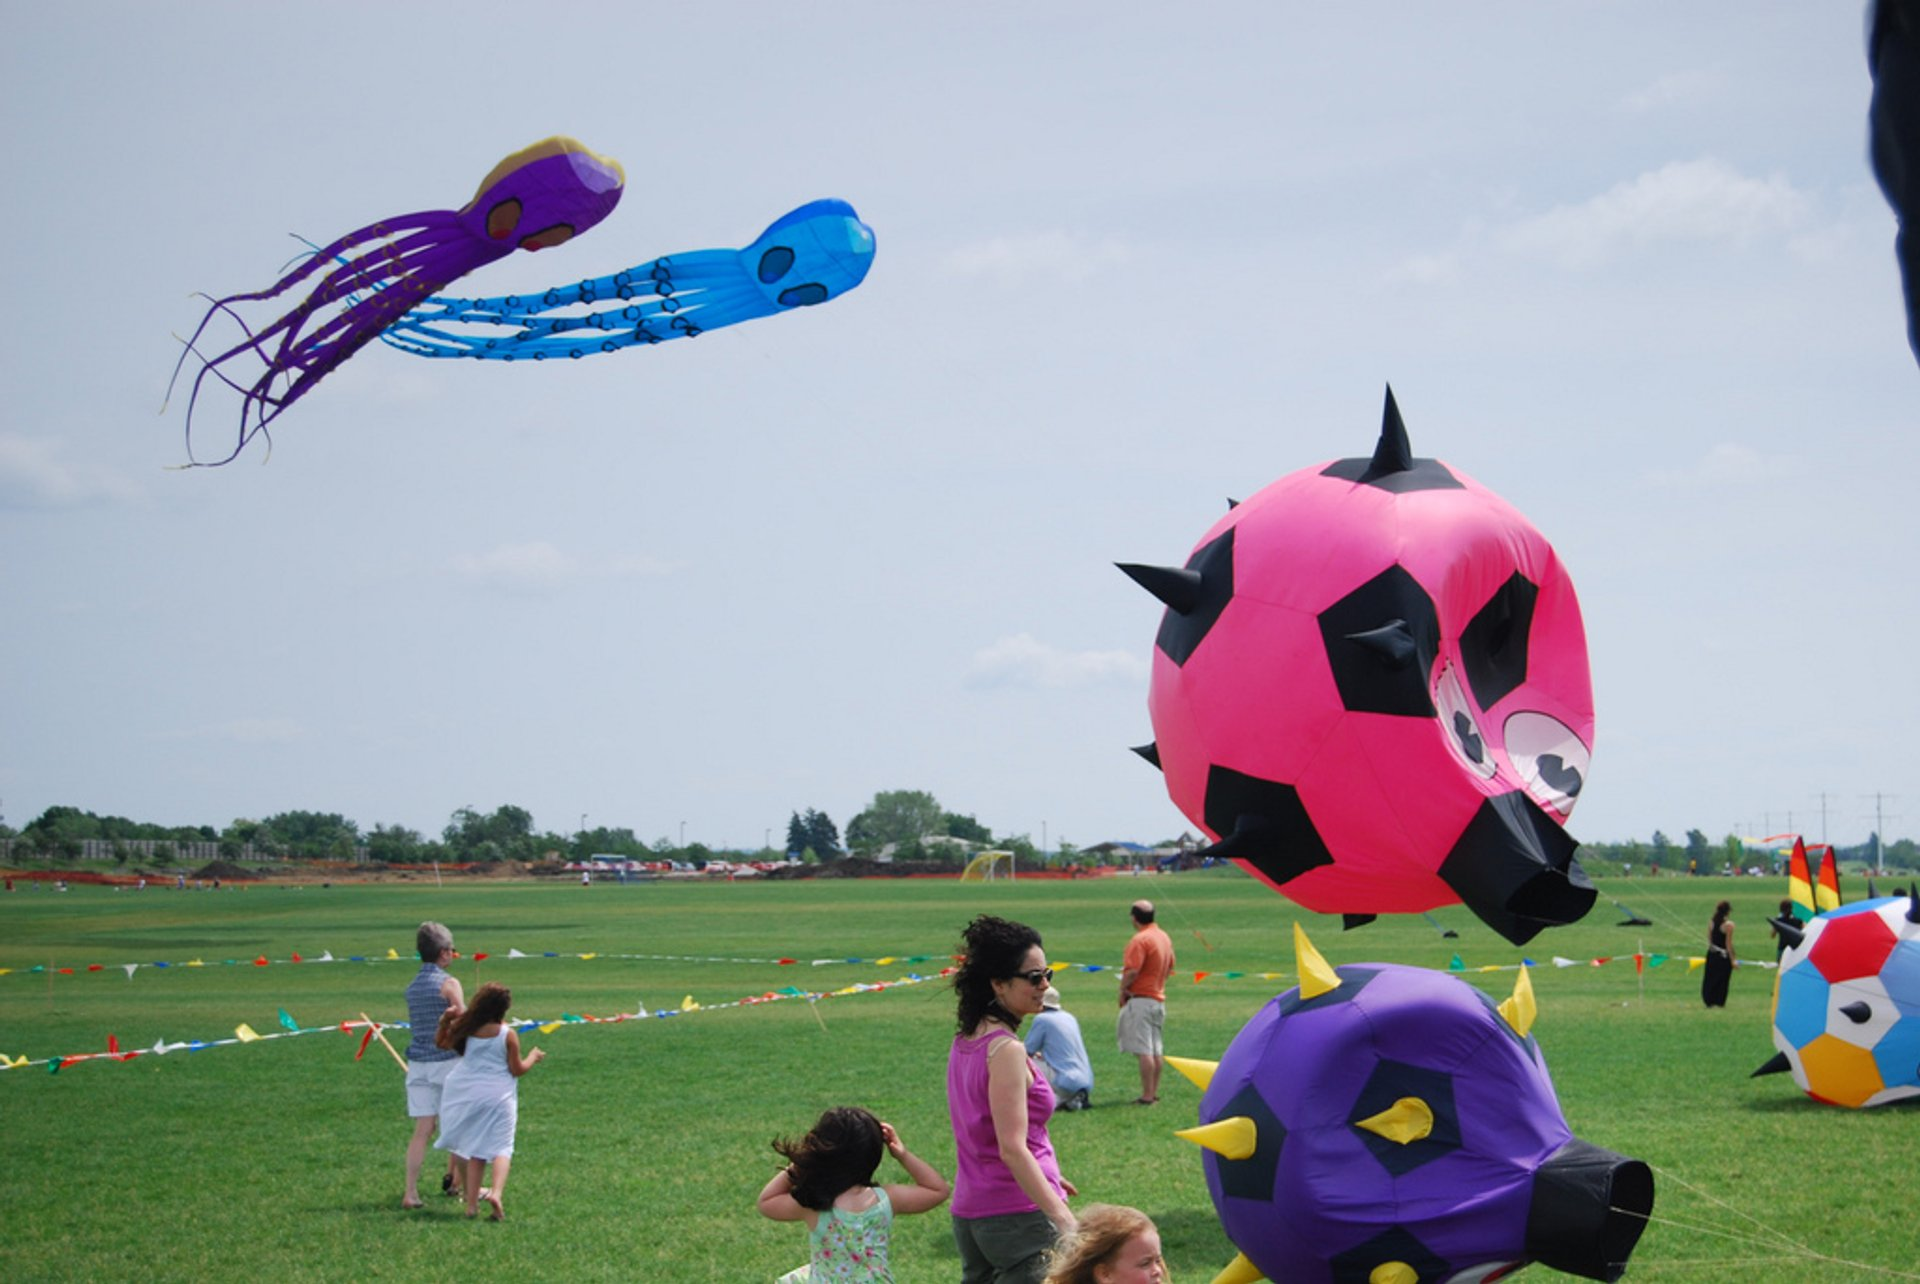 Kids and Kites Festival in Chicago 2020 - Best Time